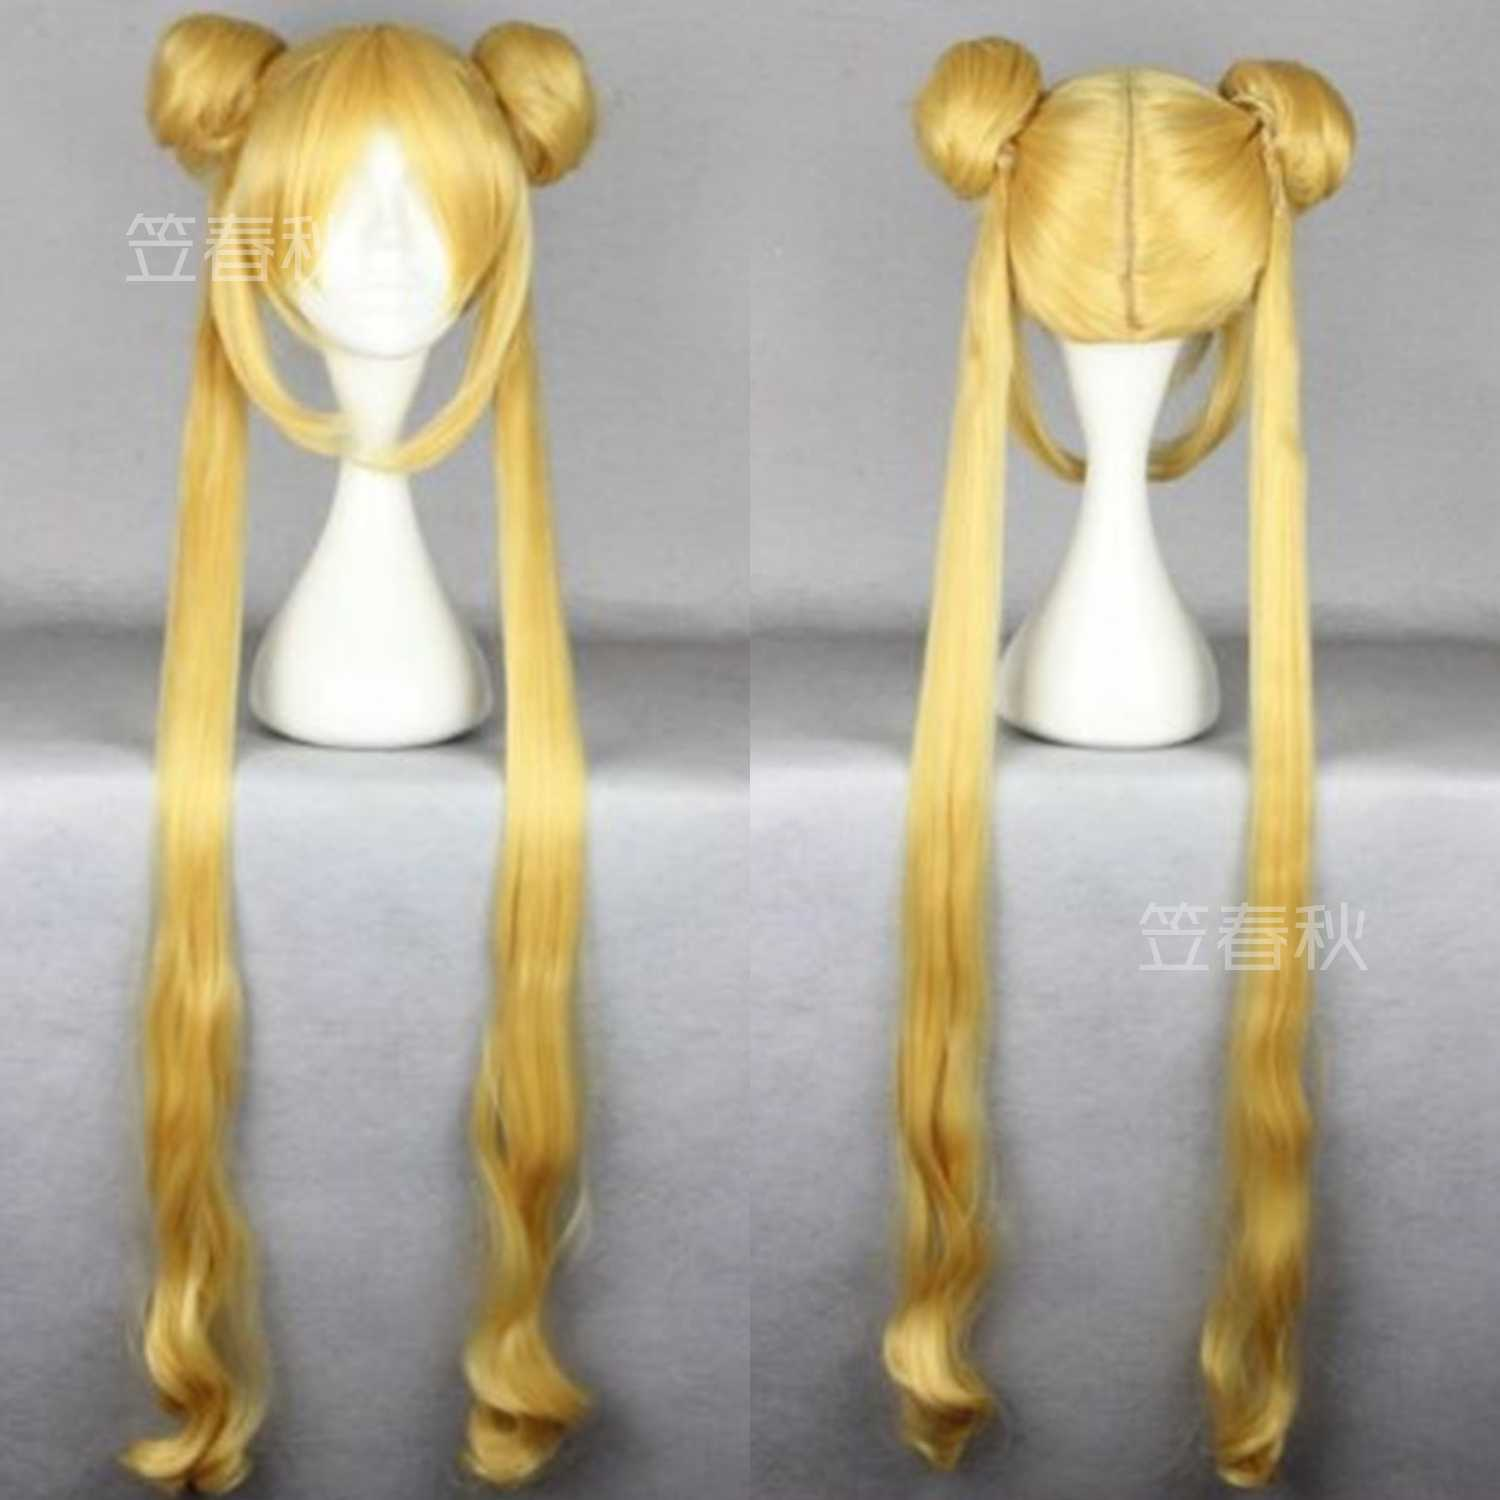 Classic Tokyo Anime Tsukino Usagi Gold Wig Sailor Moon Long Blonde Ponytails Cosplay Hair Full Wigs Reliable Performance